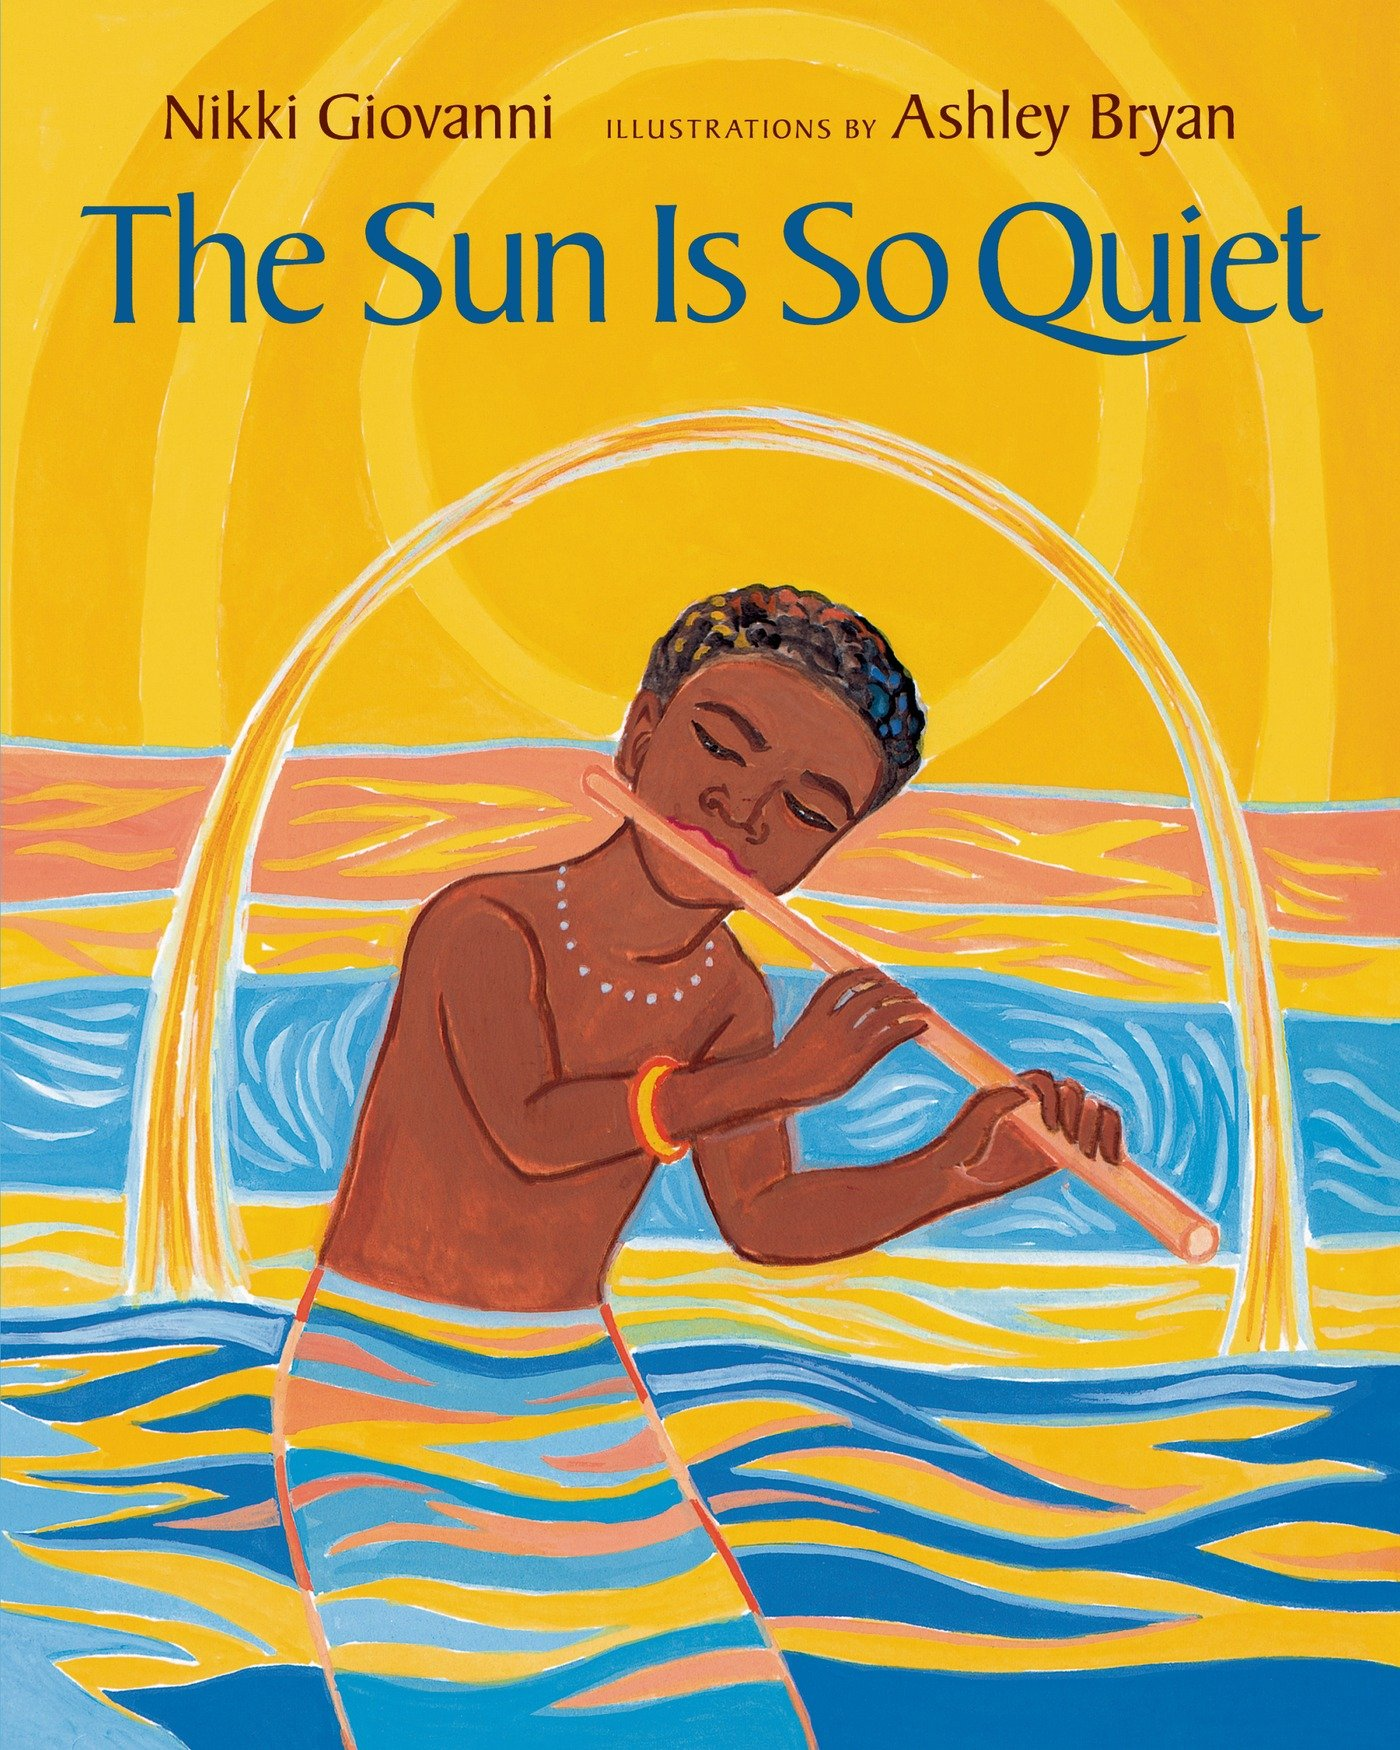 The Sun Is So Quiet – Nikki Giovanni